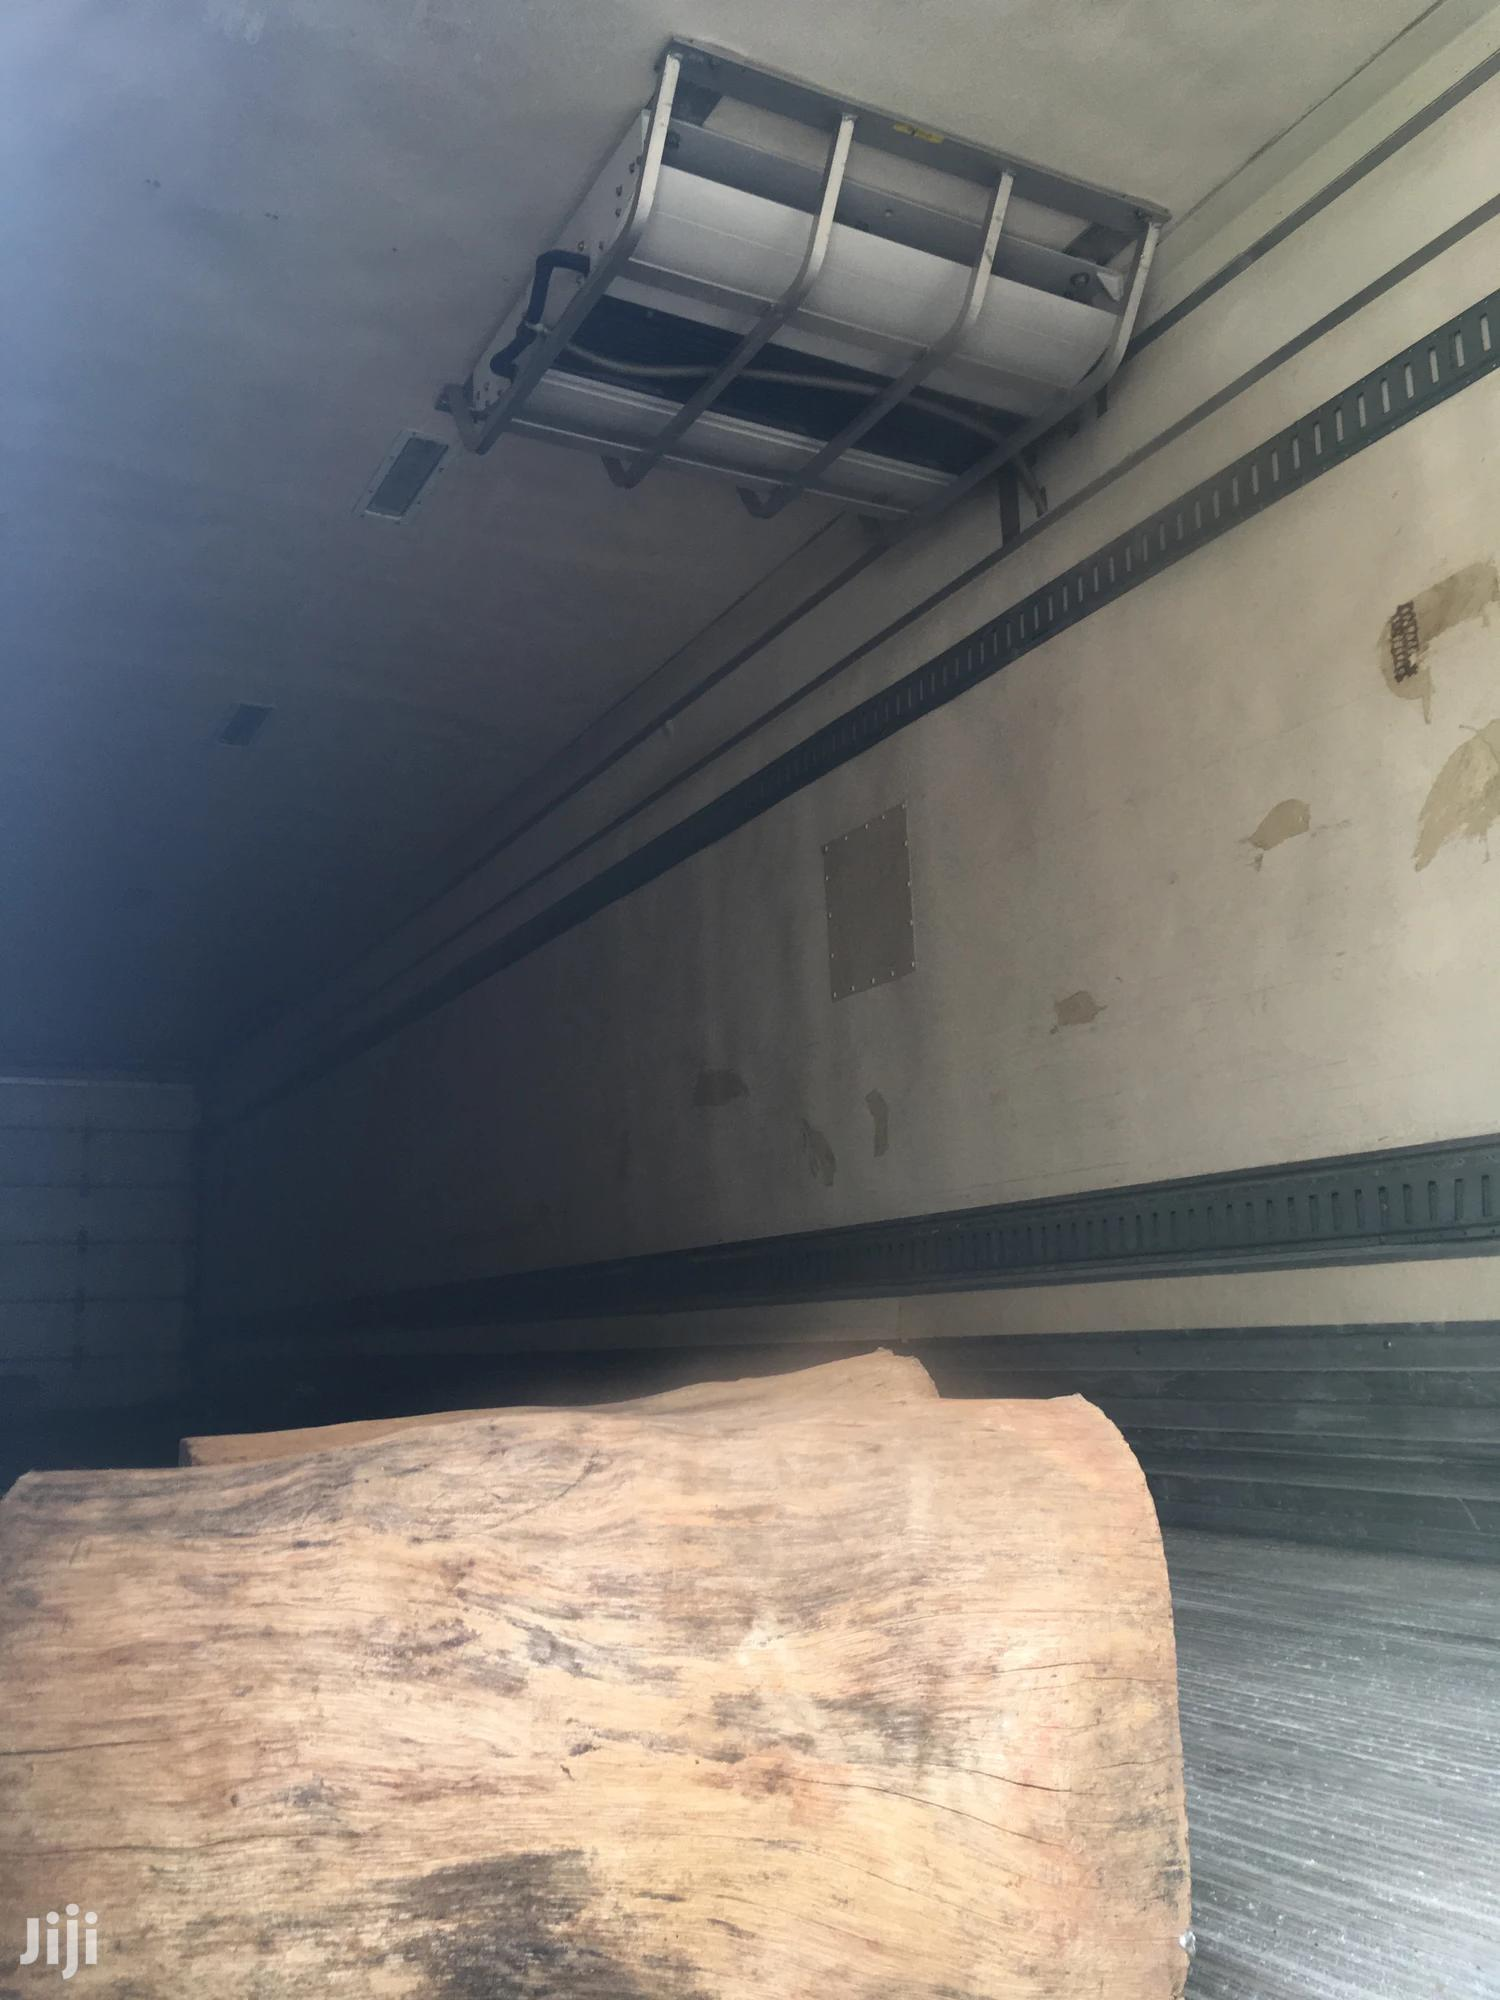 Refrigerated Trailer | Trucks & Trailers for sale in Tema Metropolitan, Greater Accra, Ghana